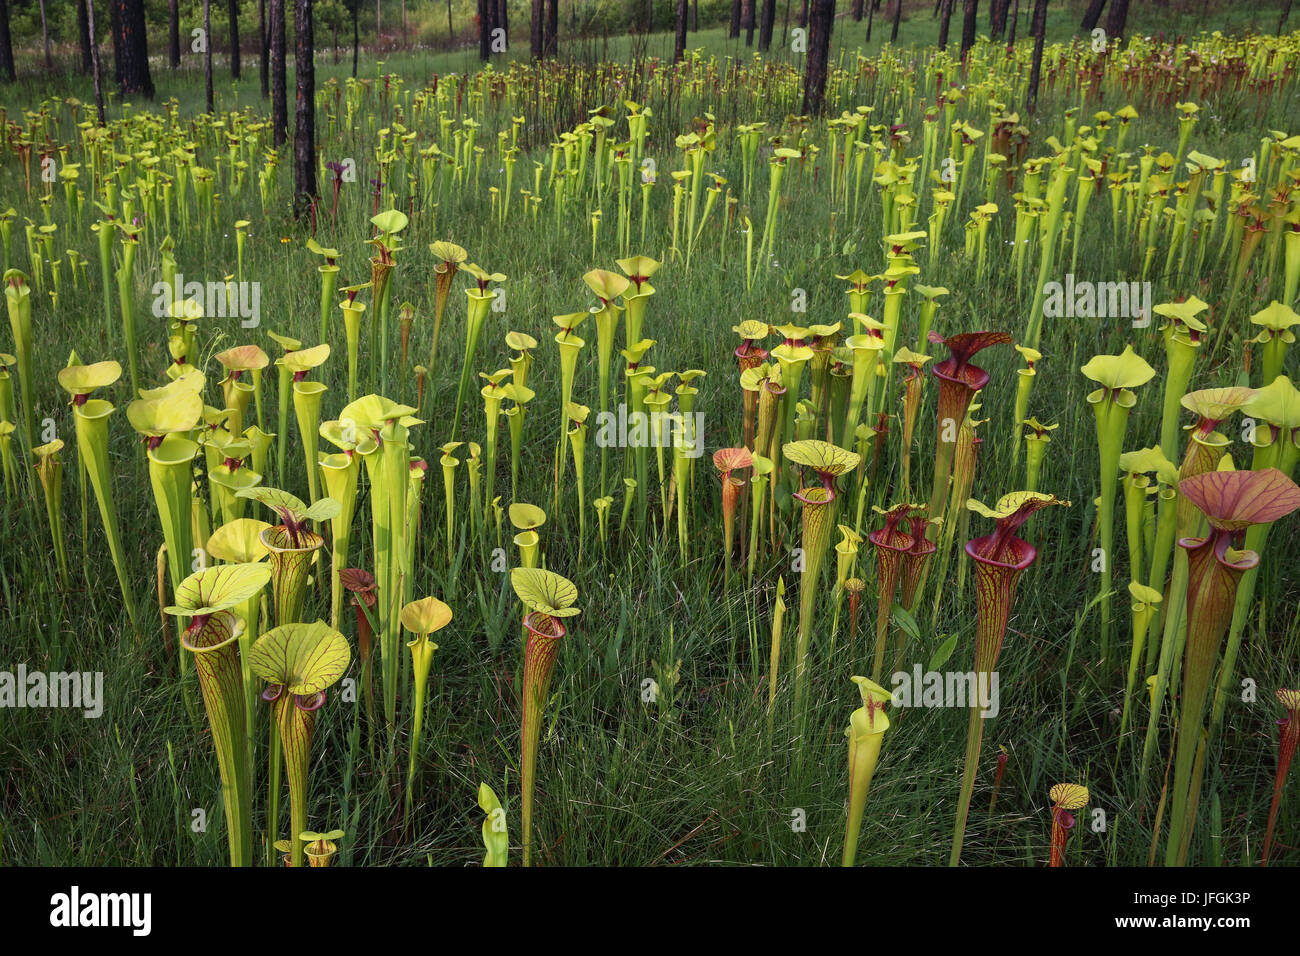 Variety of Pitcher Plants (Sarracenia) growing in hillside seepage bog, SE USA - Stock Image